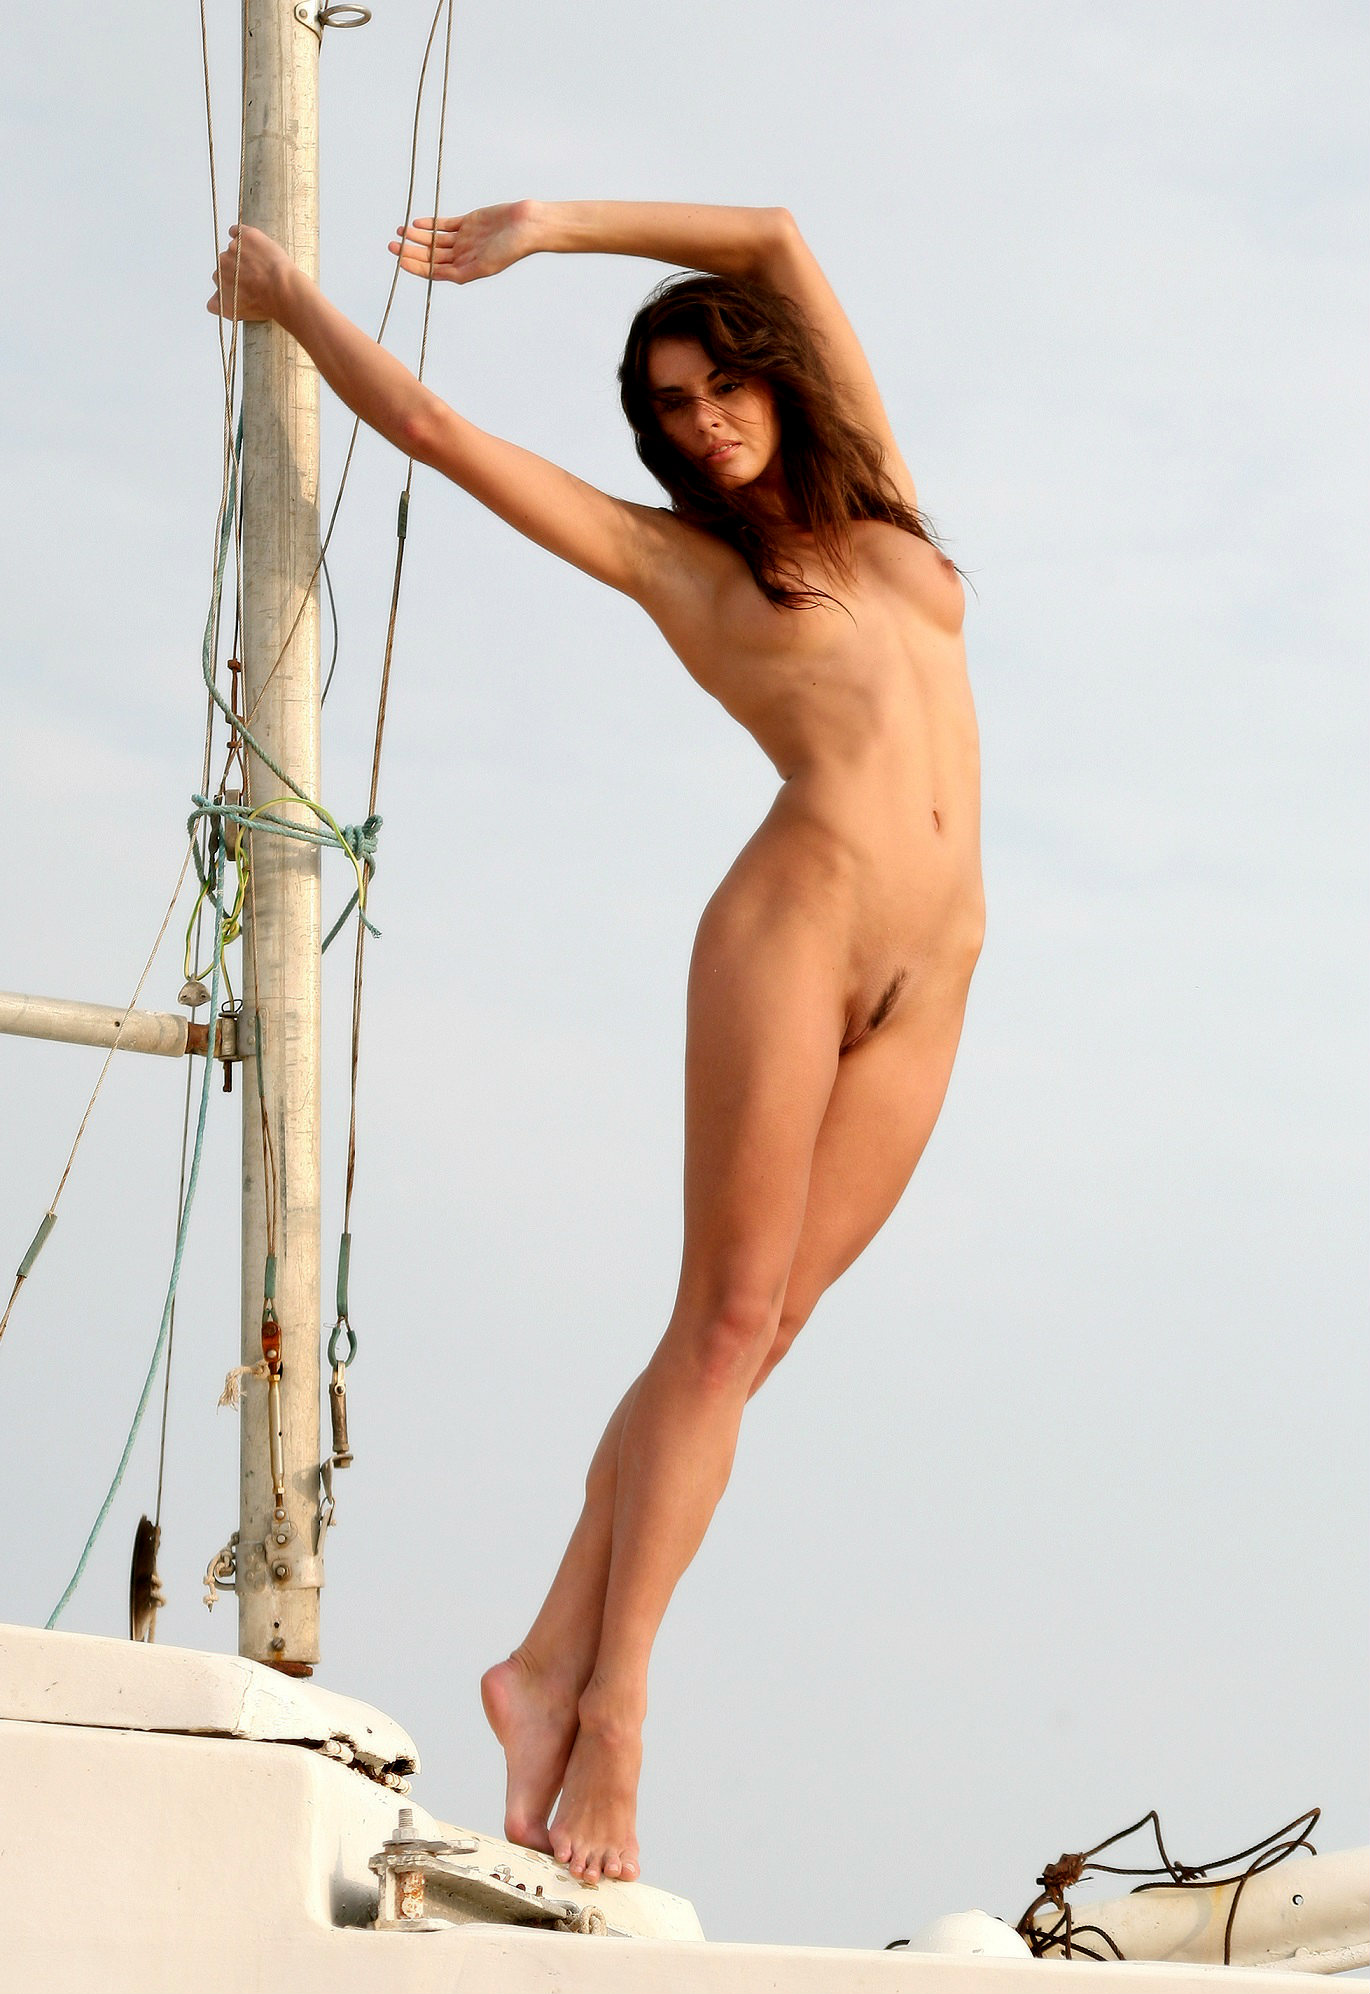 Hot russian babe on the yacht   Russian Sexy Girls